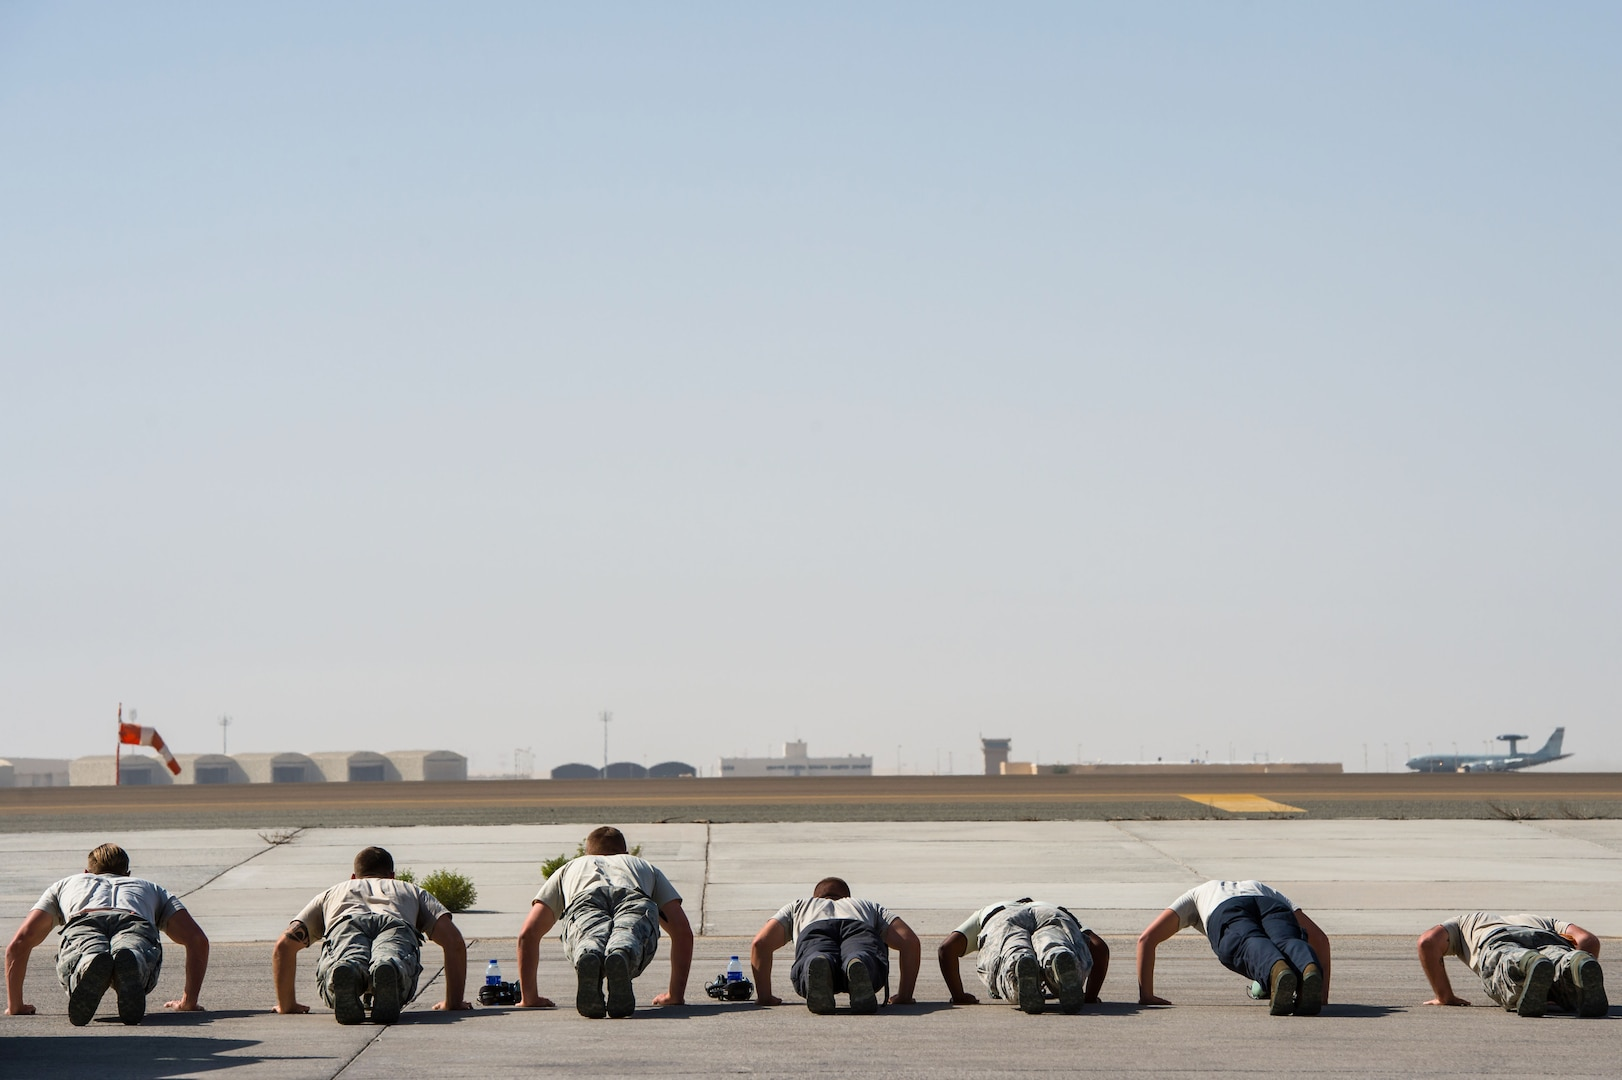 380th Expeditionary Aircraft Maintenance Squadron Airmen complete pushups while an E-3 Sentry departs and completes a sortie in support of Combined Joint Task Force-Operation Inherent Resolve at an undisclosed location in Southwest Asia, Feb. 2, 2017. The E-3 Sentry maintainers complete as many push-ups as possible while the aircraft takes off. Since November 2016, no E-3 Sentry has missed a scheduled sortie due to maintenance issues. (U.S. Air Force photo by Senior Airman Tyler Woodward)